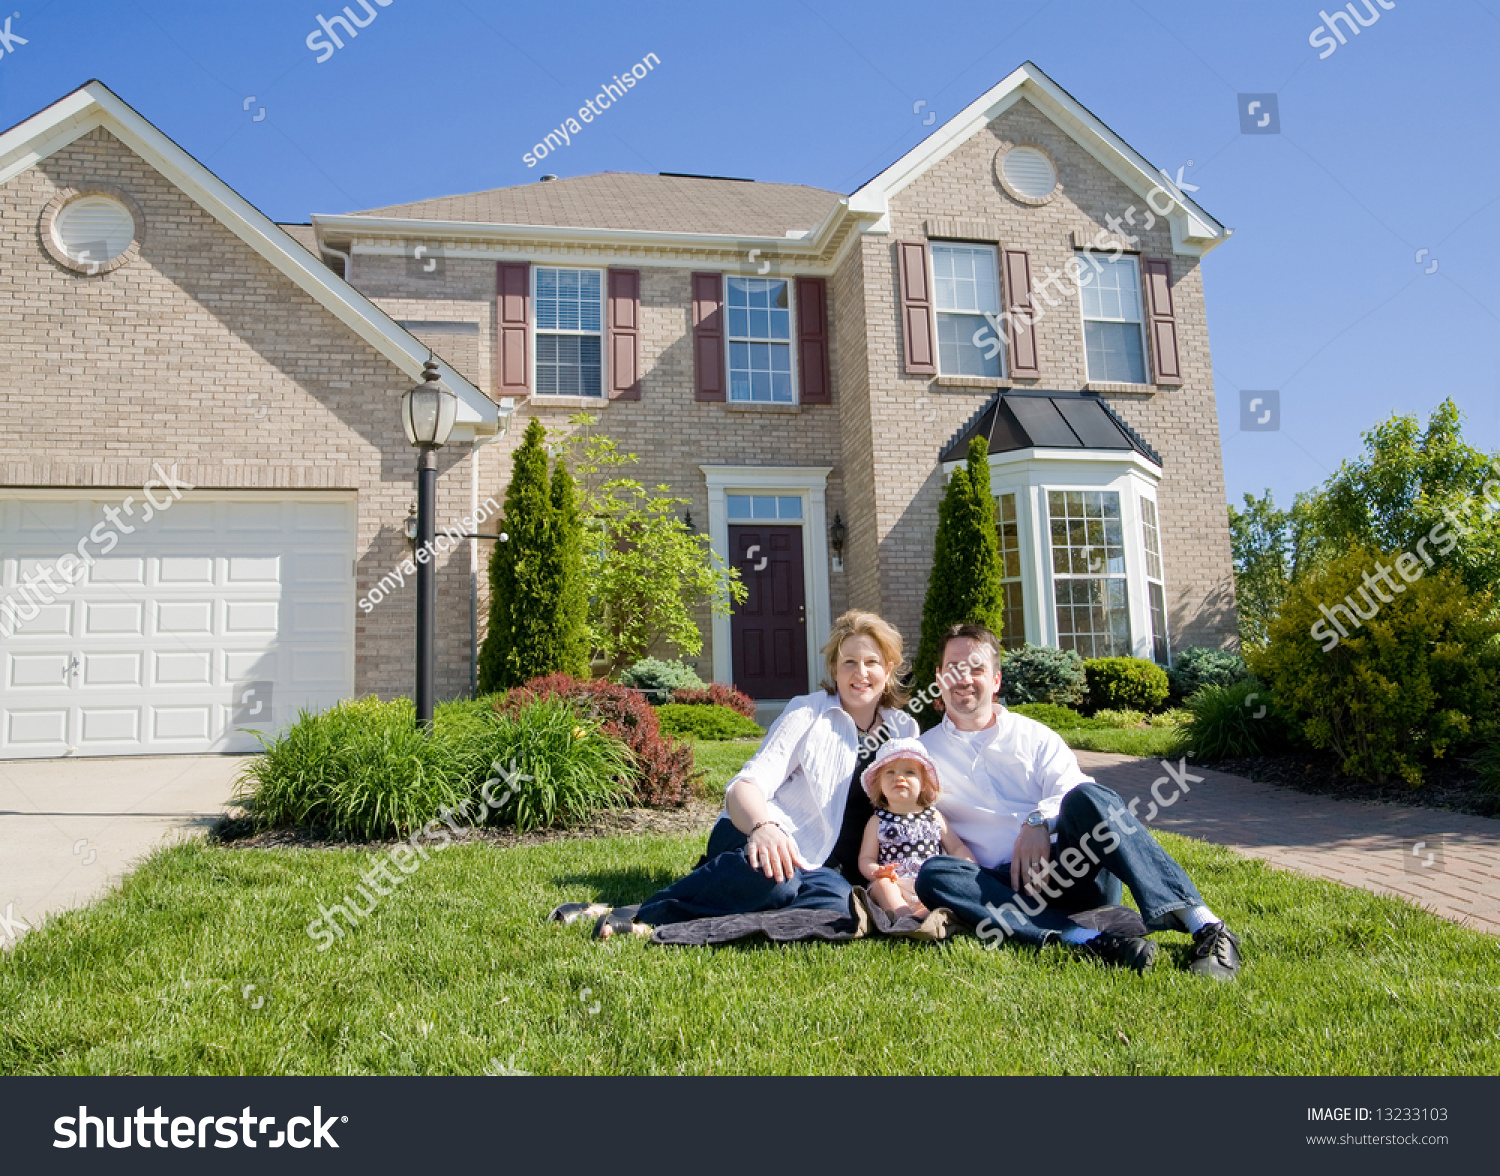 Family in front of house stock photo 13233103 shutterstock for Family in house